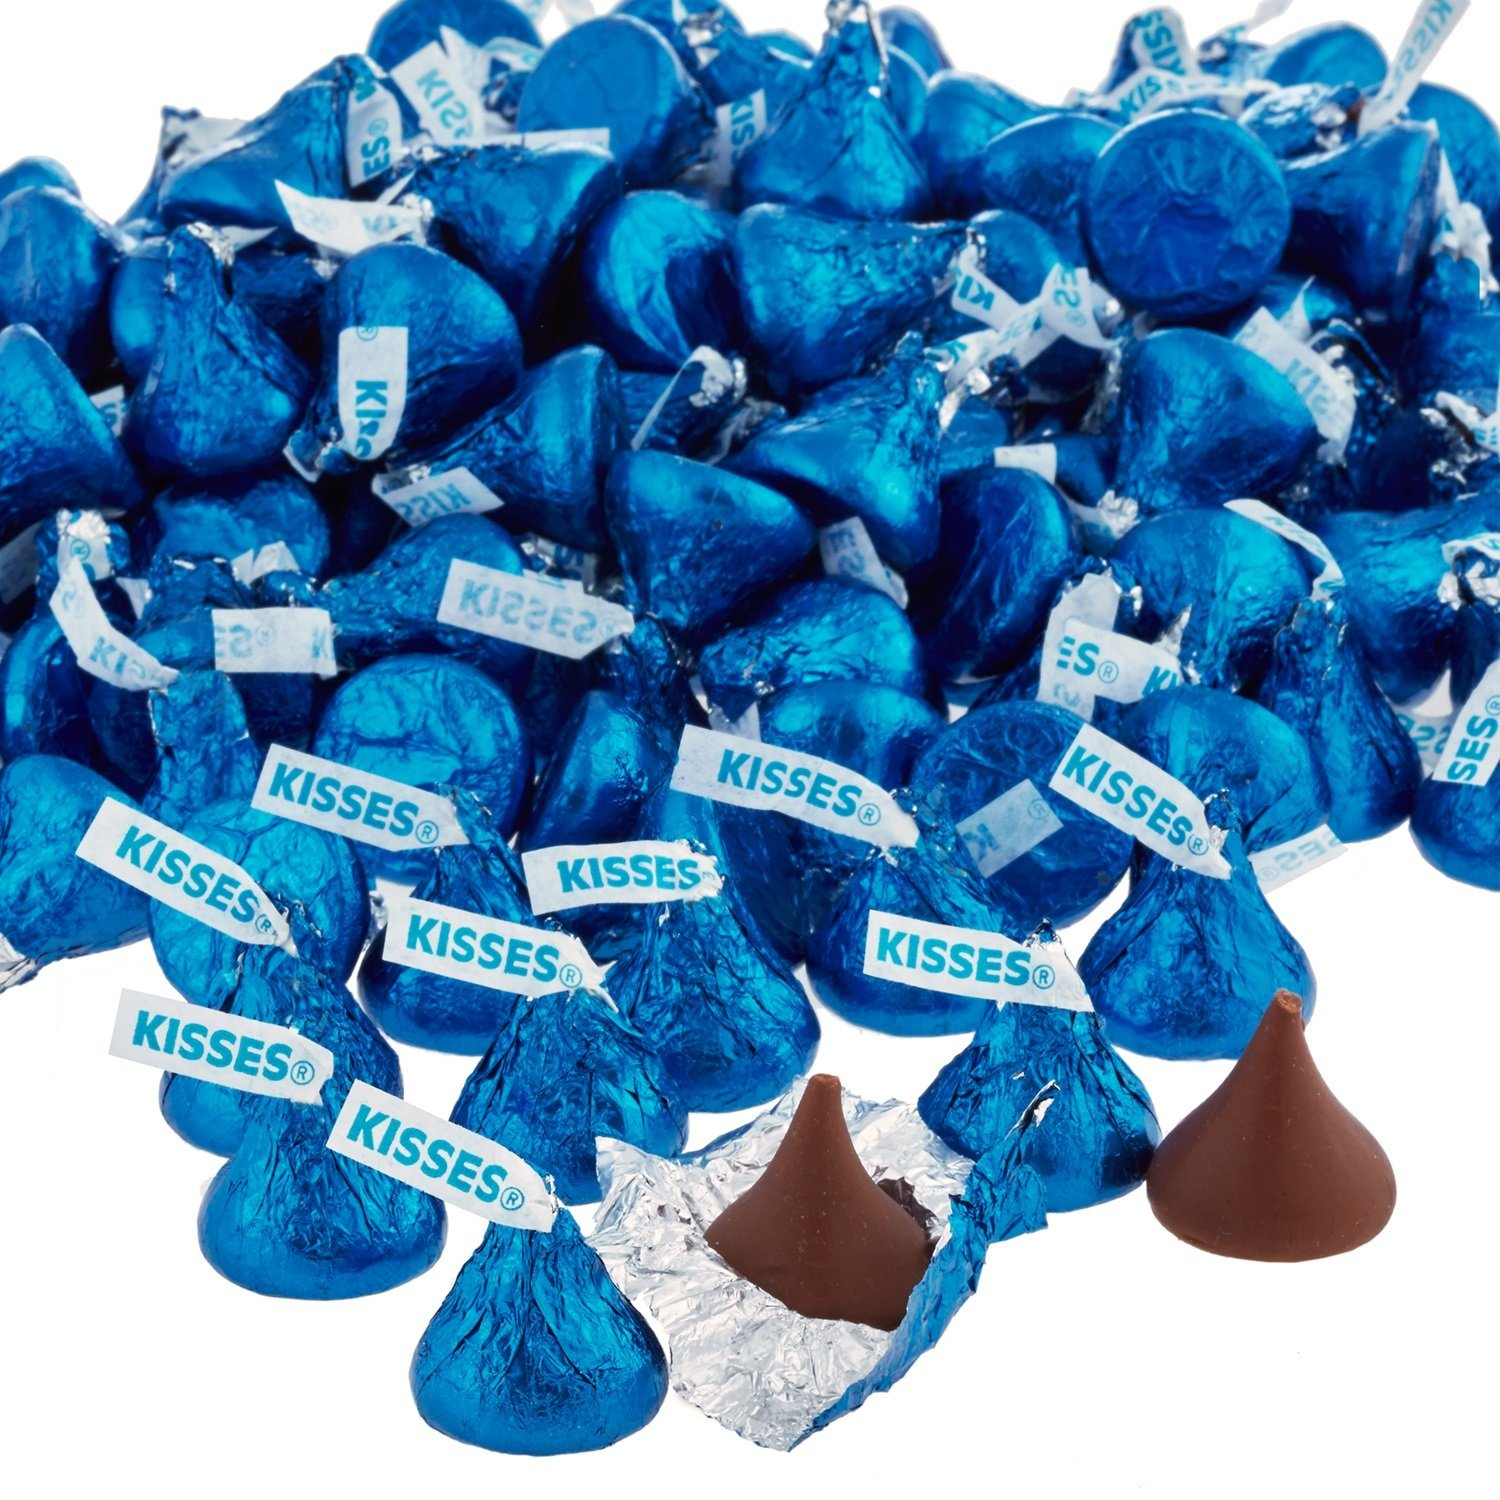 HERSHEY'S KISSES Chocolate Candy, Dark Blue Foils, 4.1lb Bulk Candy, approx. 400 Pieces. Perfect for Graduation and 4th of July Decorations by Kisses (Image #11)